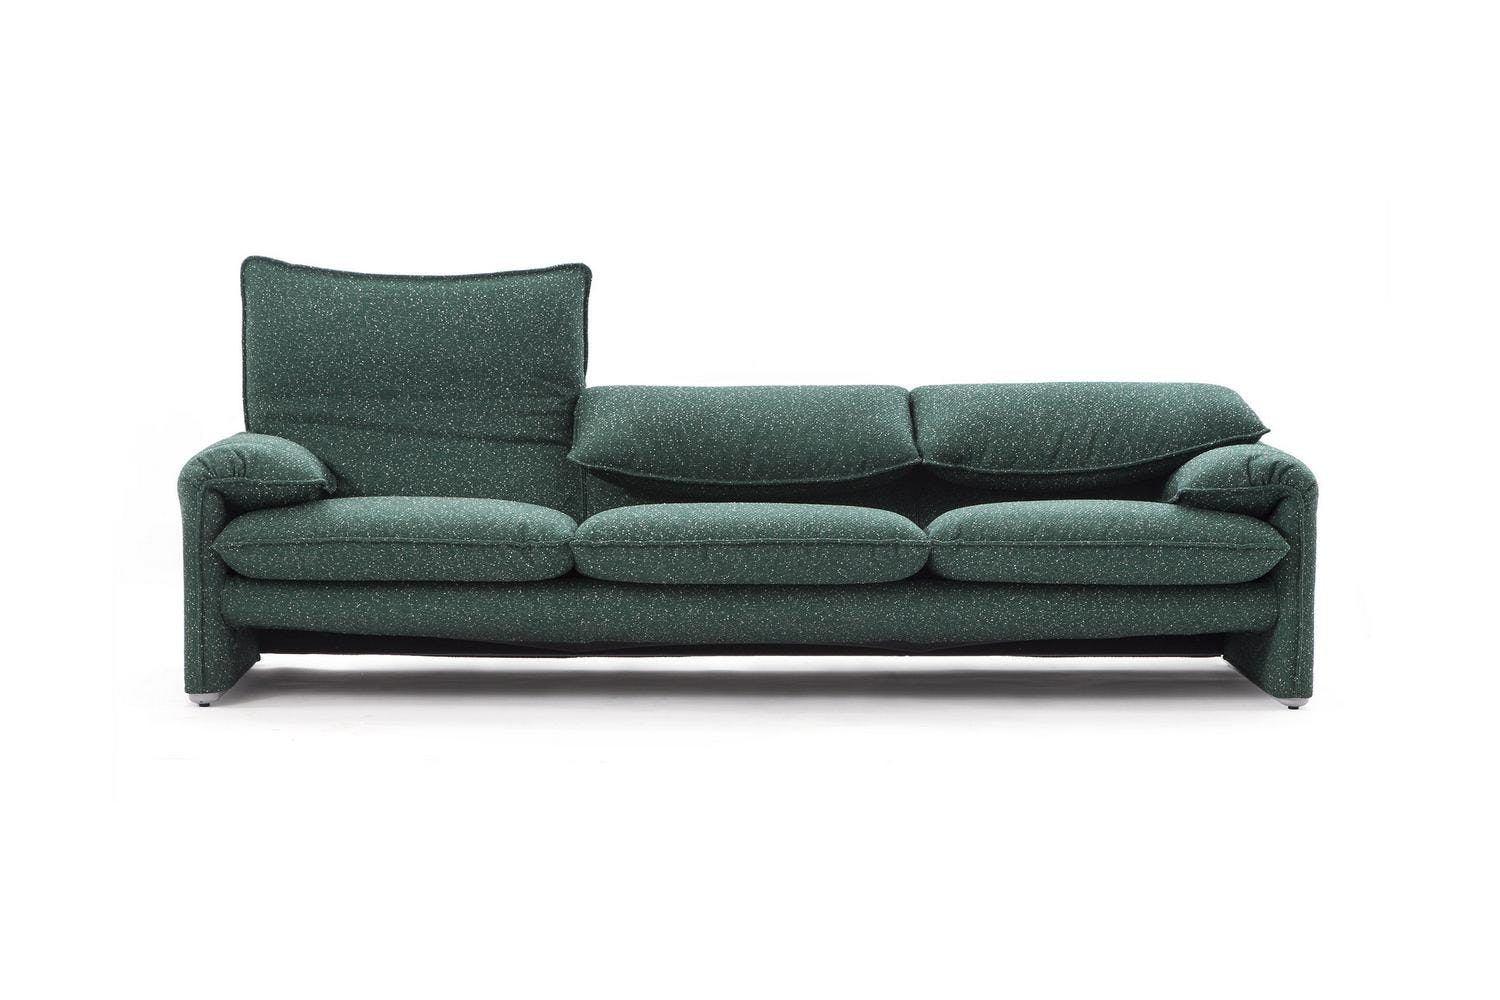 675 maralunga 40s sofa by vico magistretti for cassina space furniture. Black Bedroom Furniture Sets. Home Design Ideas